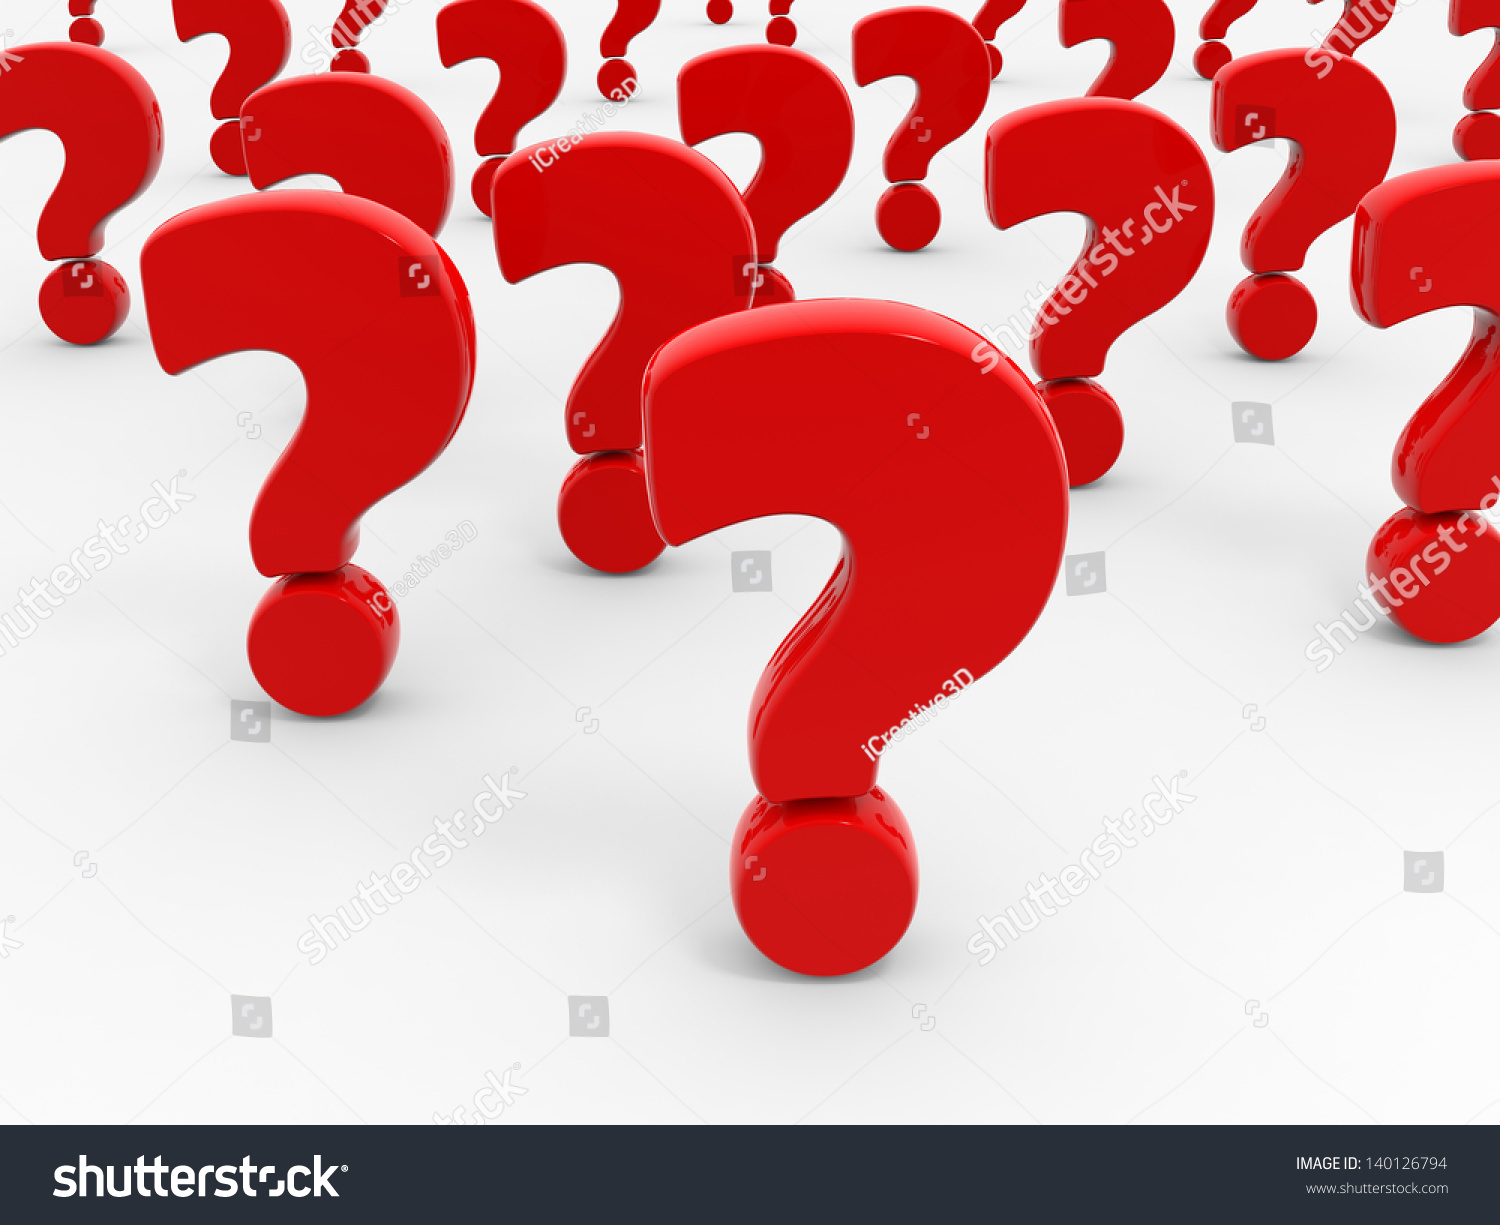 Red Question Marks On White Background Stock Illustration ...